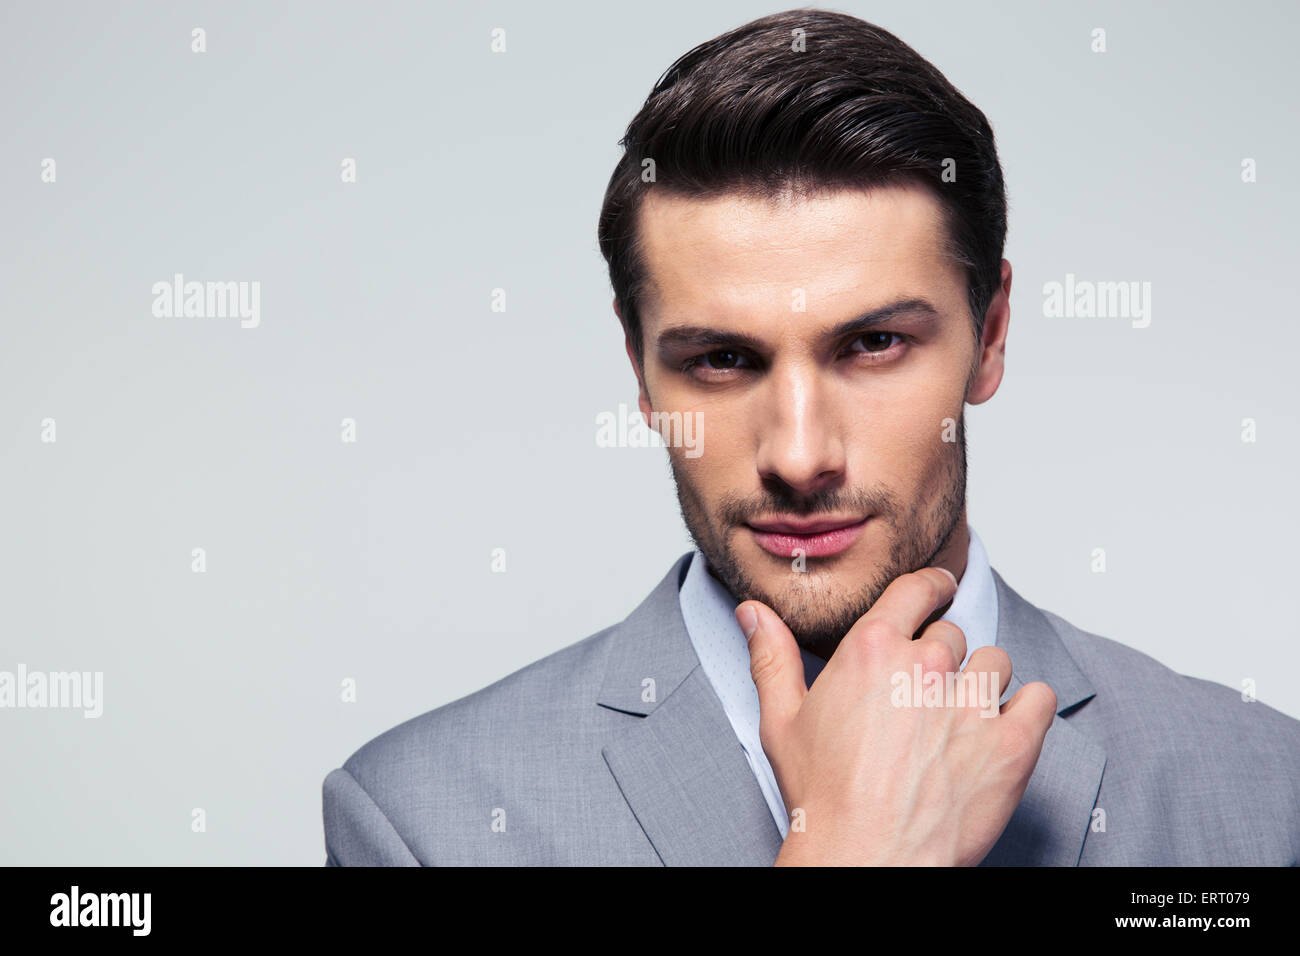 Portrait of a thoughtful businessman touching his chin over gray background - Stock Image